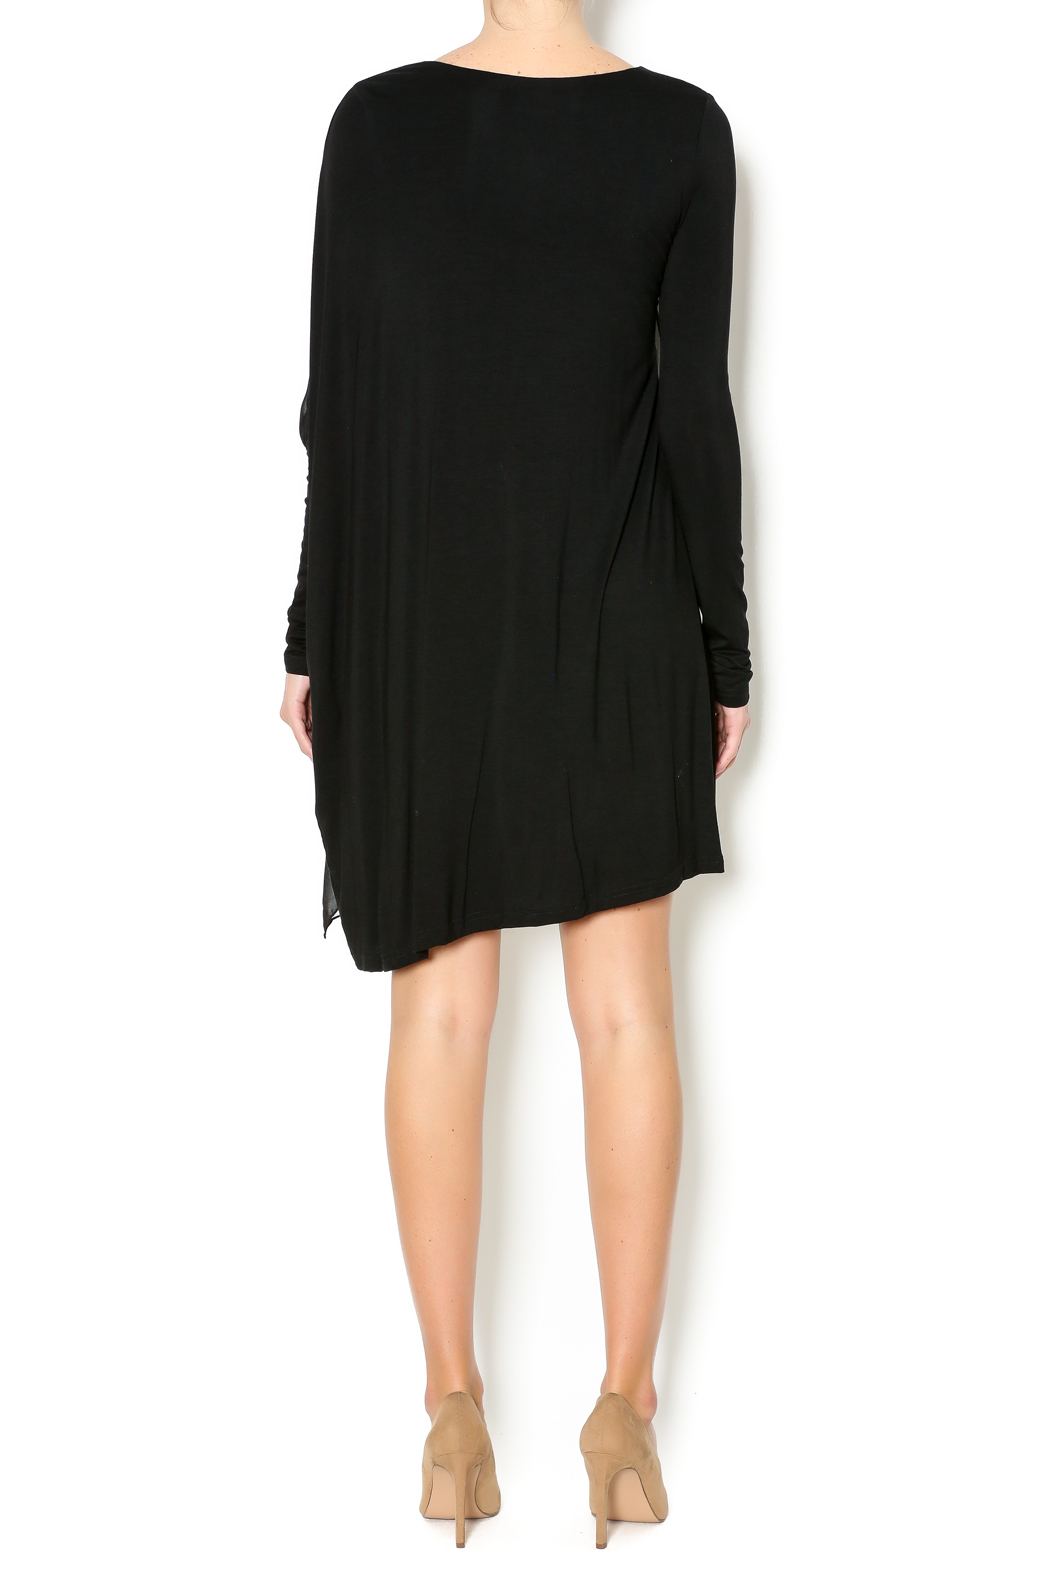 Do Amp Be Asymmetrical Layered Dress From New Jersey By